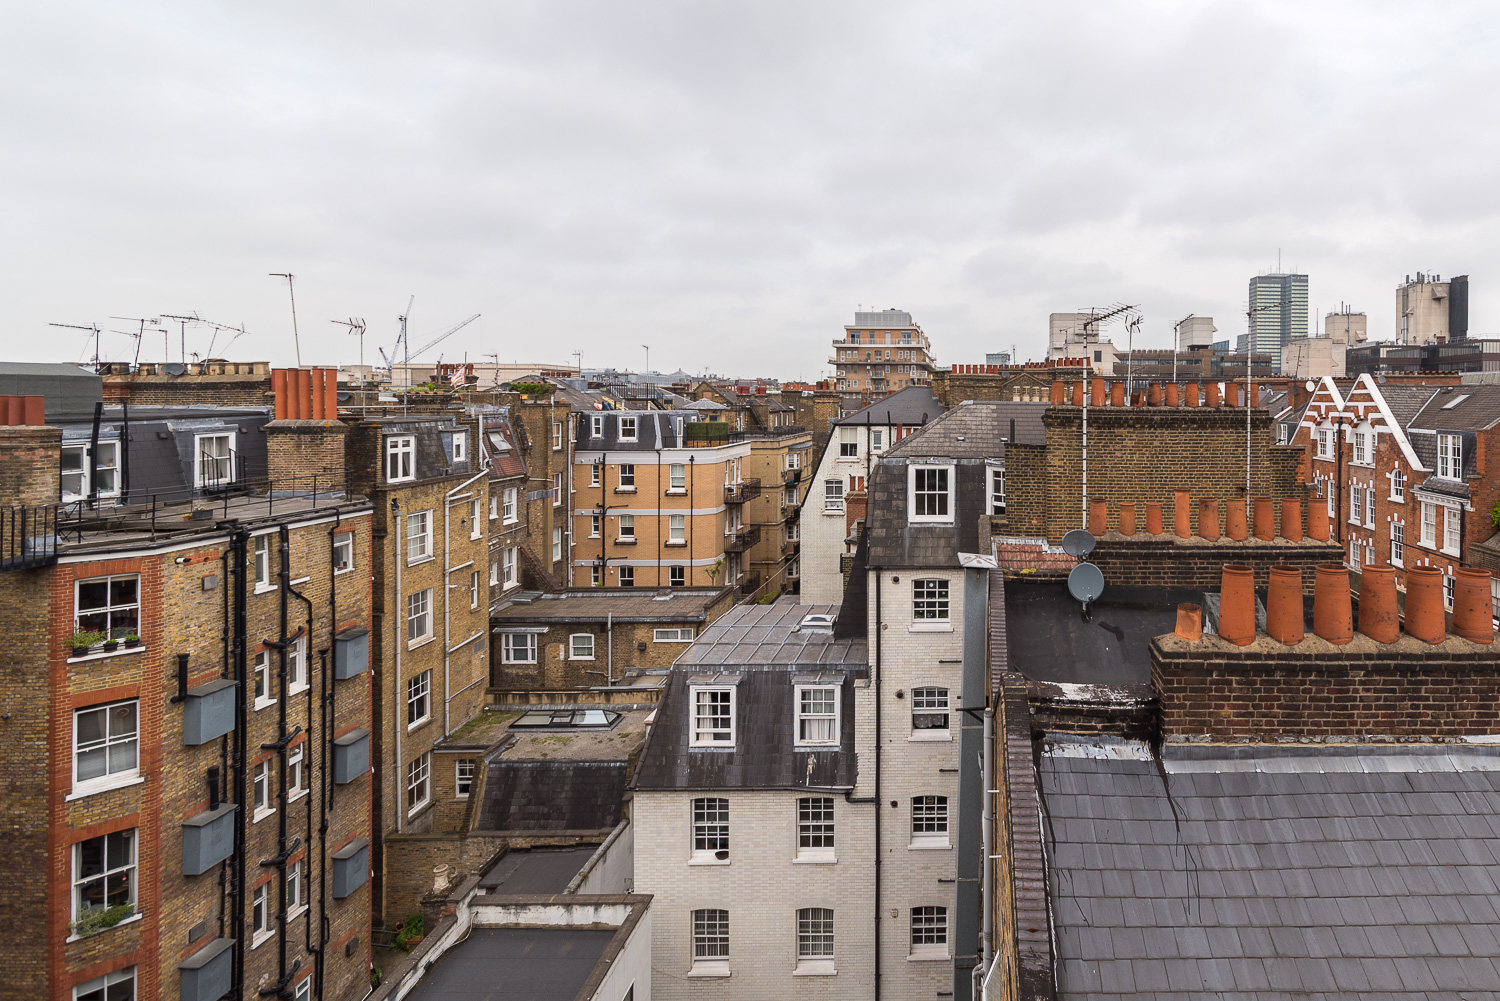 Lovelydays luxury service apartment rental - London - Fitzrovia - Foley Street II - Lovelysuite - 2 bedrooms - 2 bathrooms - Panoramic view - 6b2c58a8923f - Lovelydays